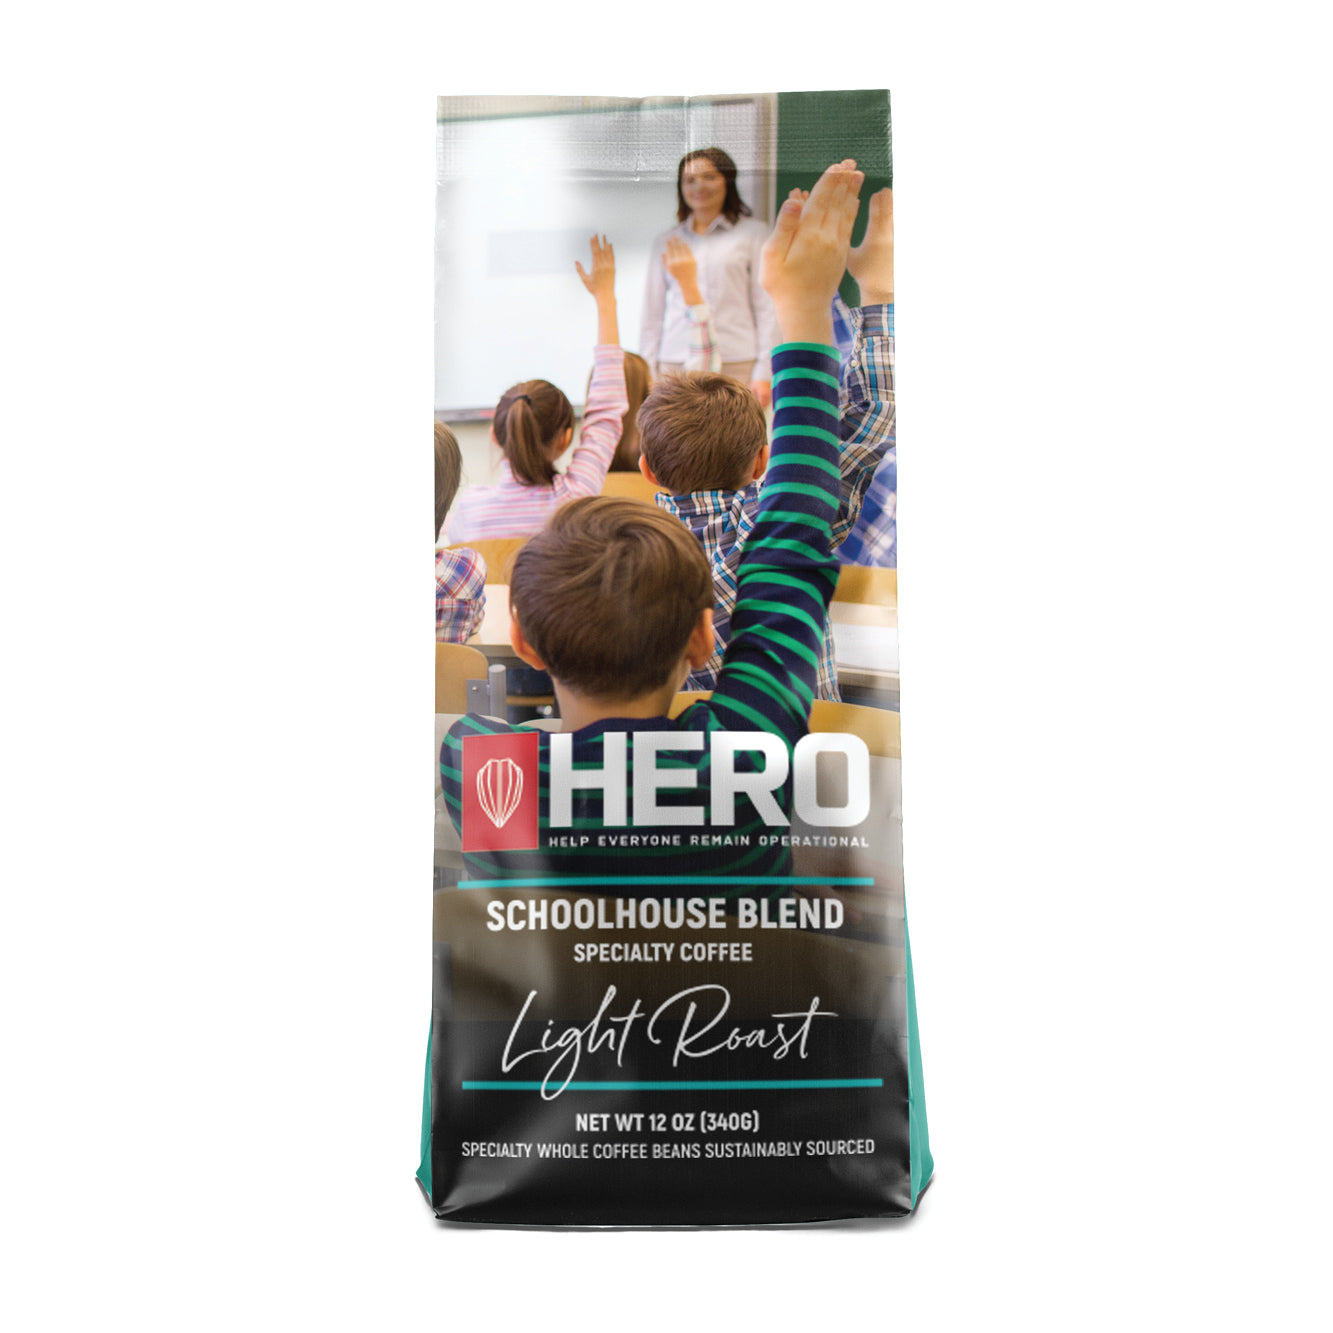 HERO Schoolhouse Blend Light Roast Coffee